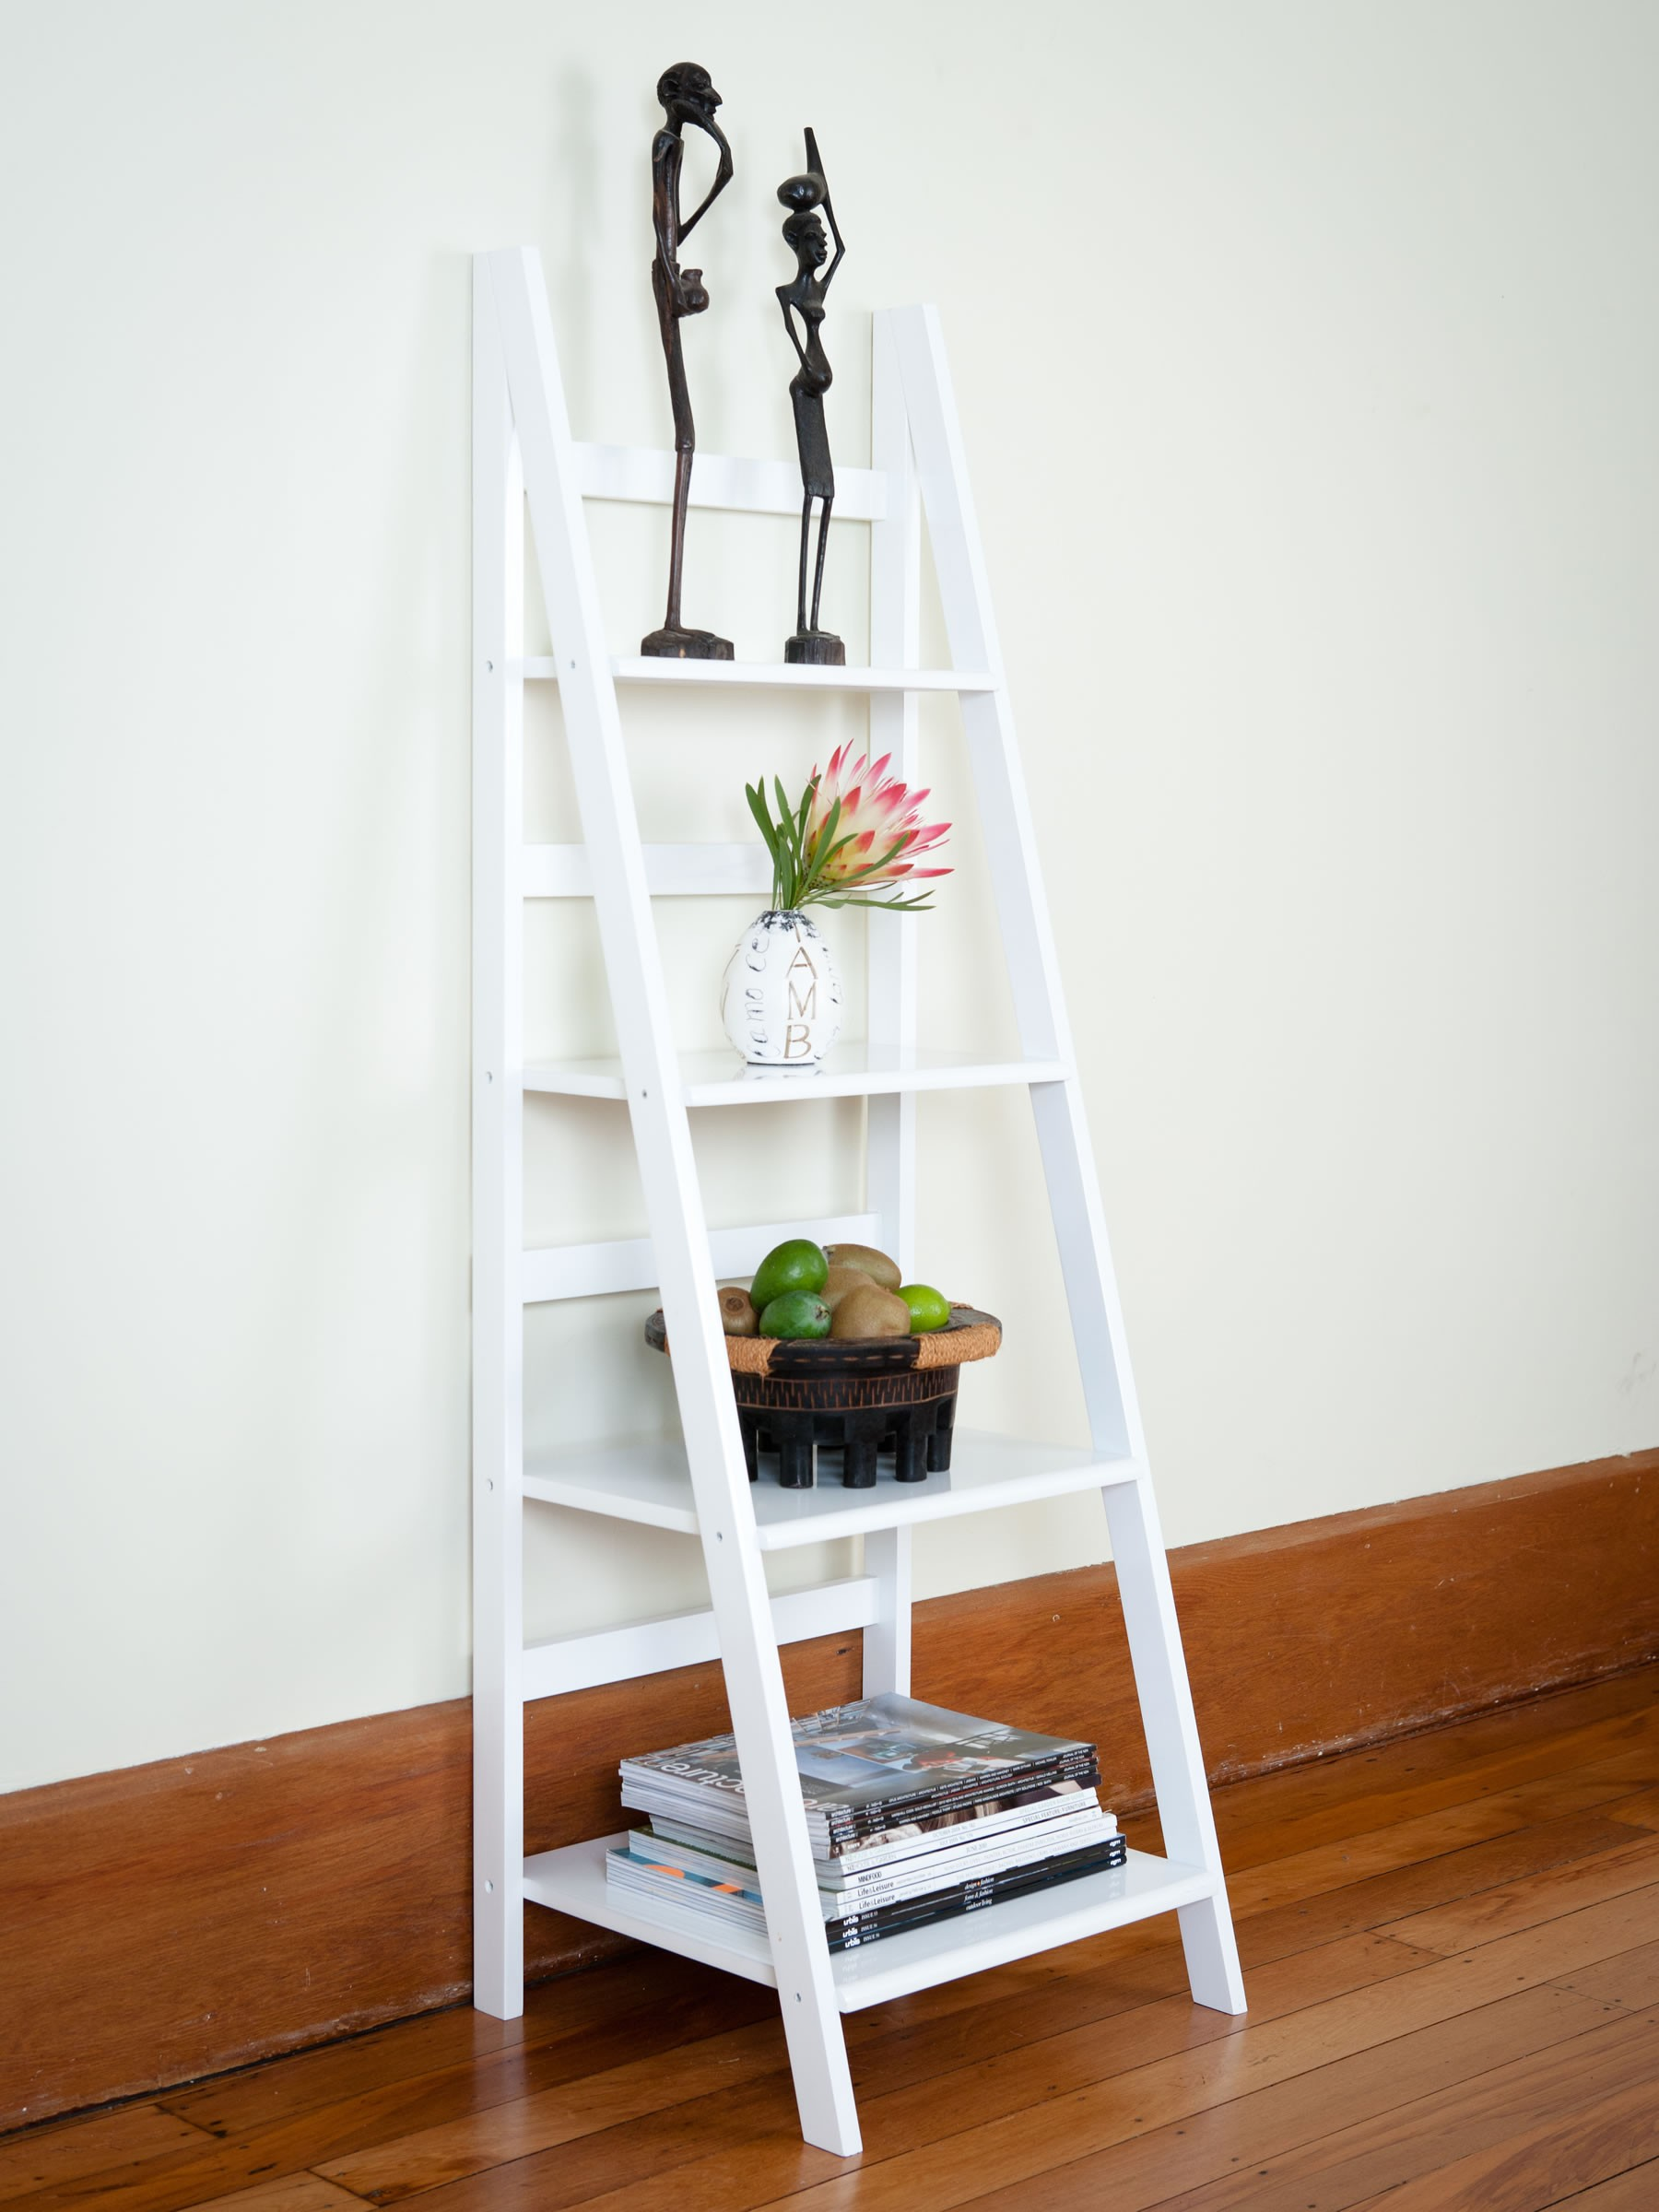 Perfect uses for a ladder shelf